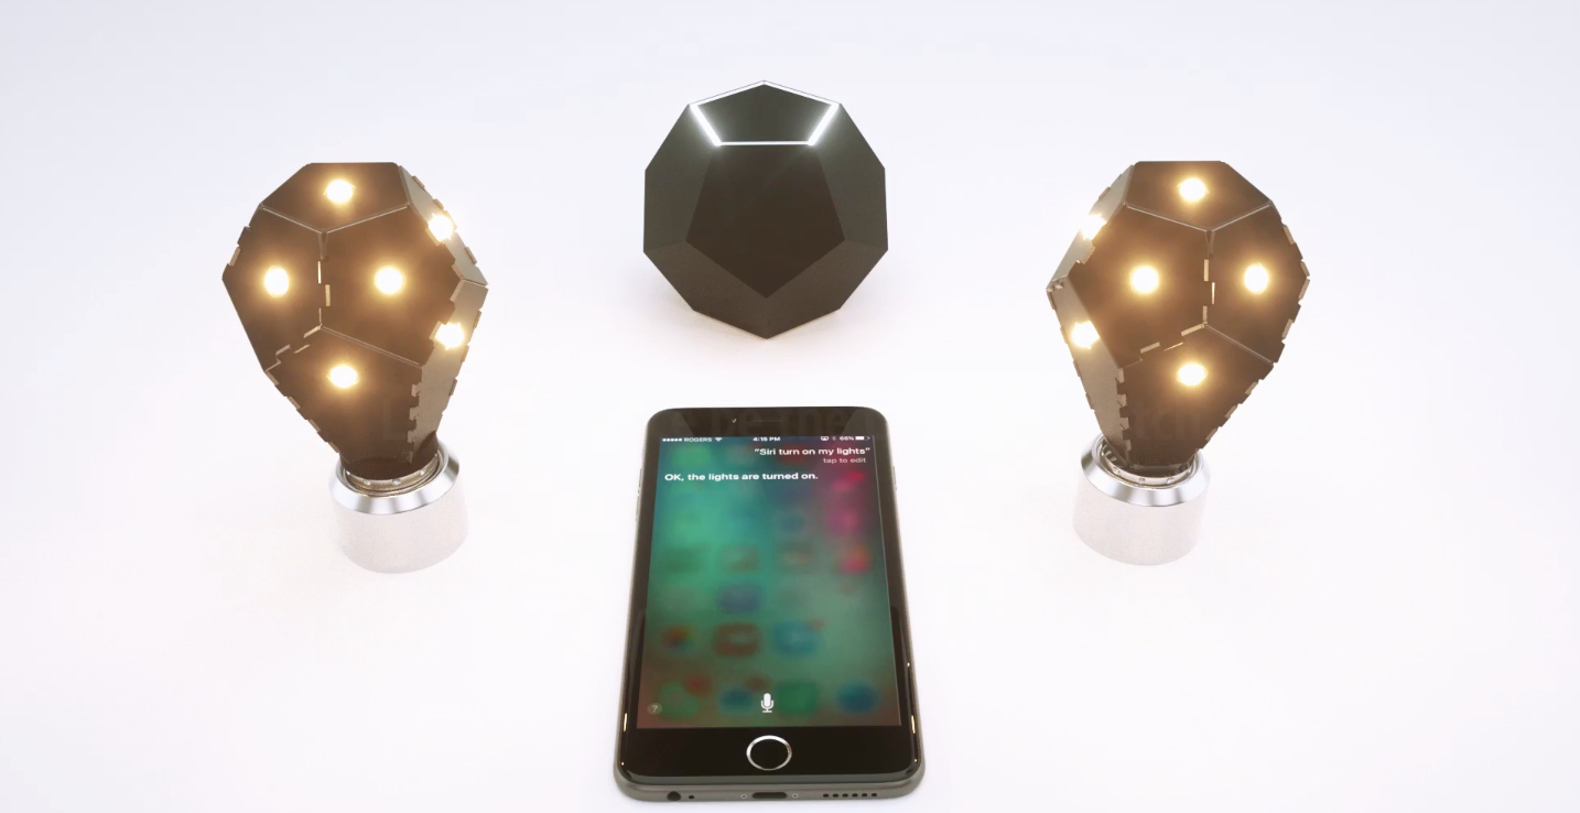 nanoleaf launches new smart hub that allows you to control your